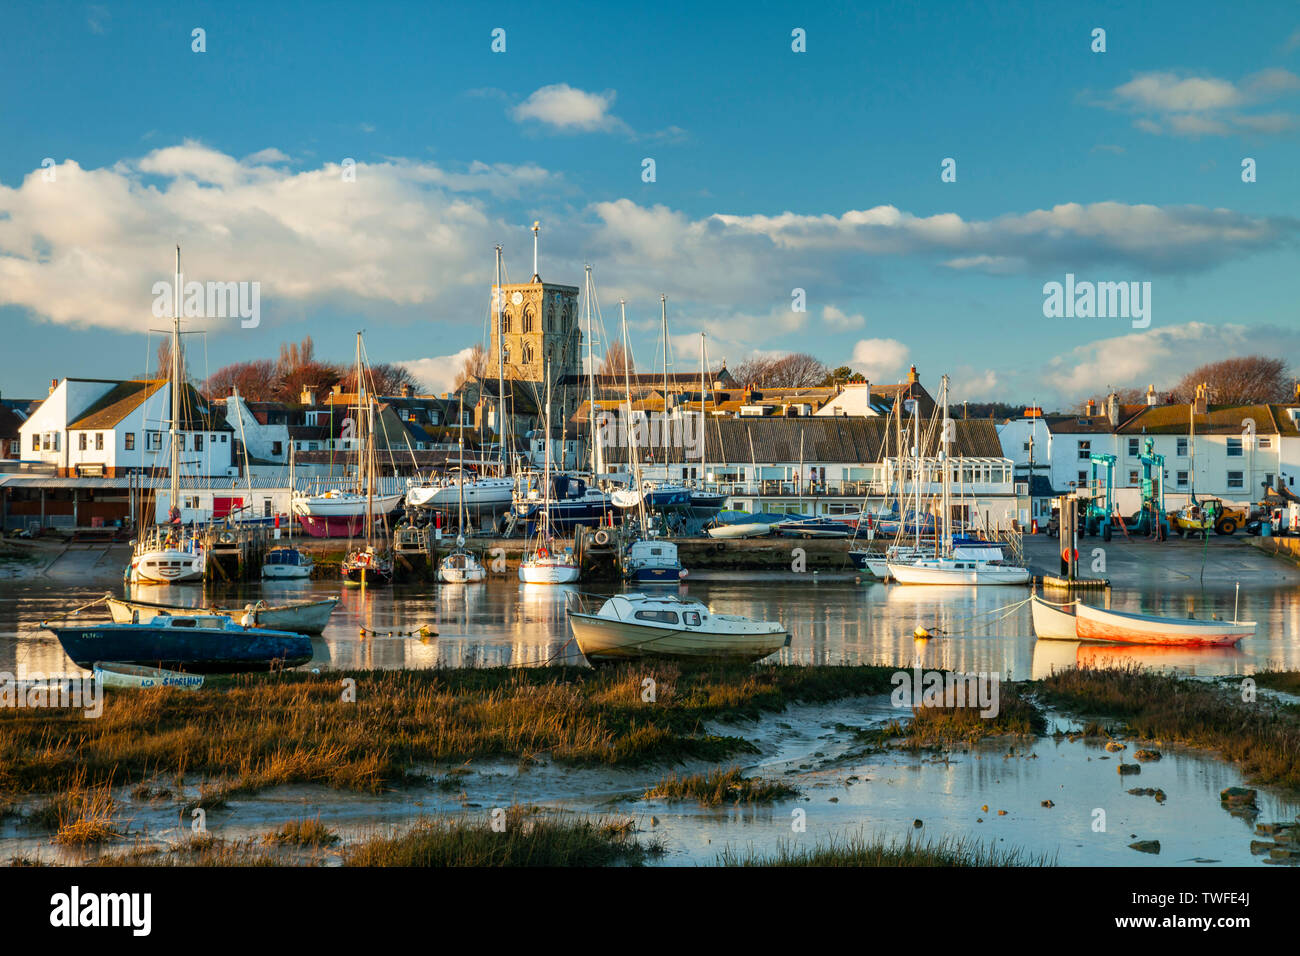 Winter sunset on river Adur in Shoreham-by-Sea. Stock Photo